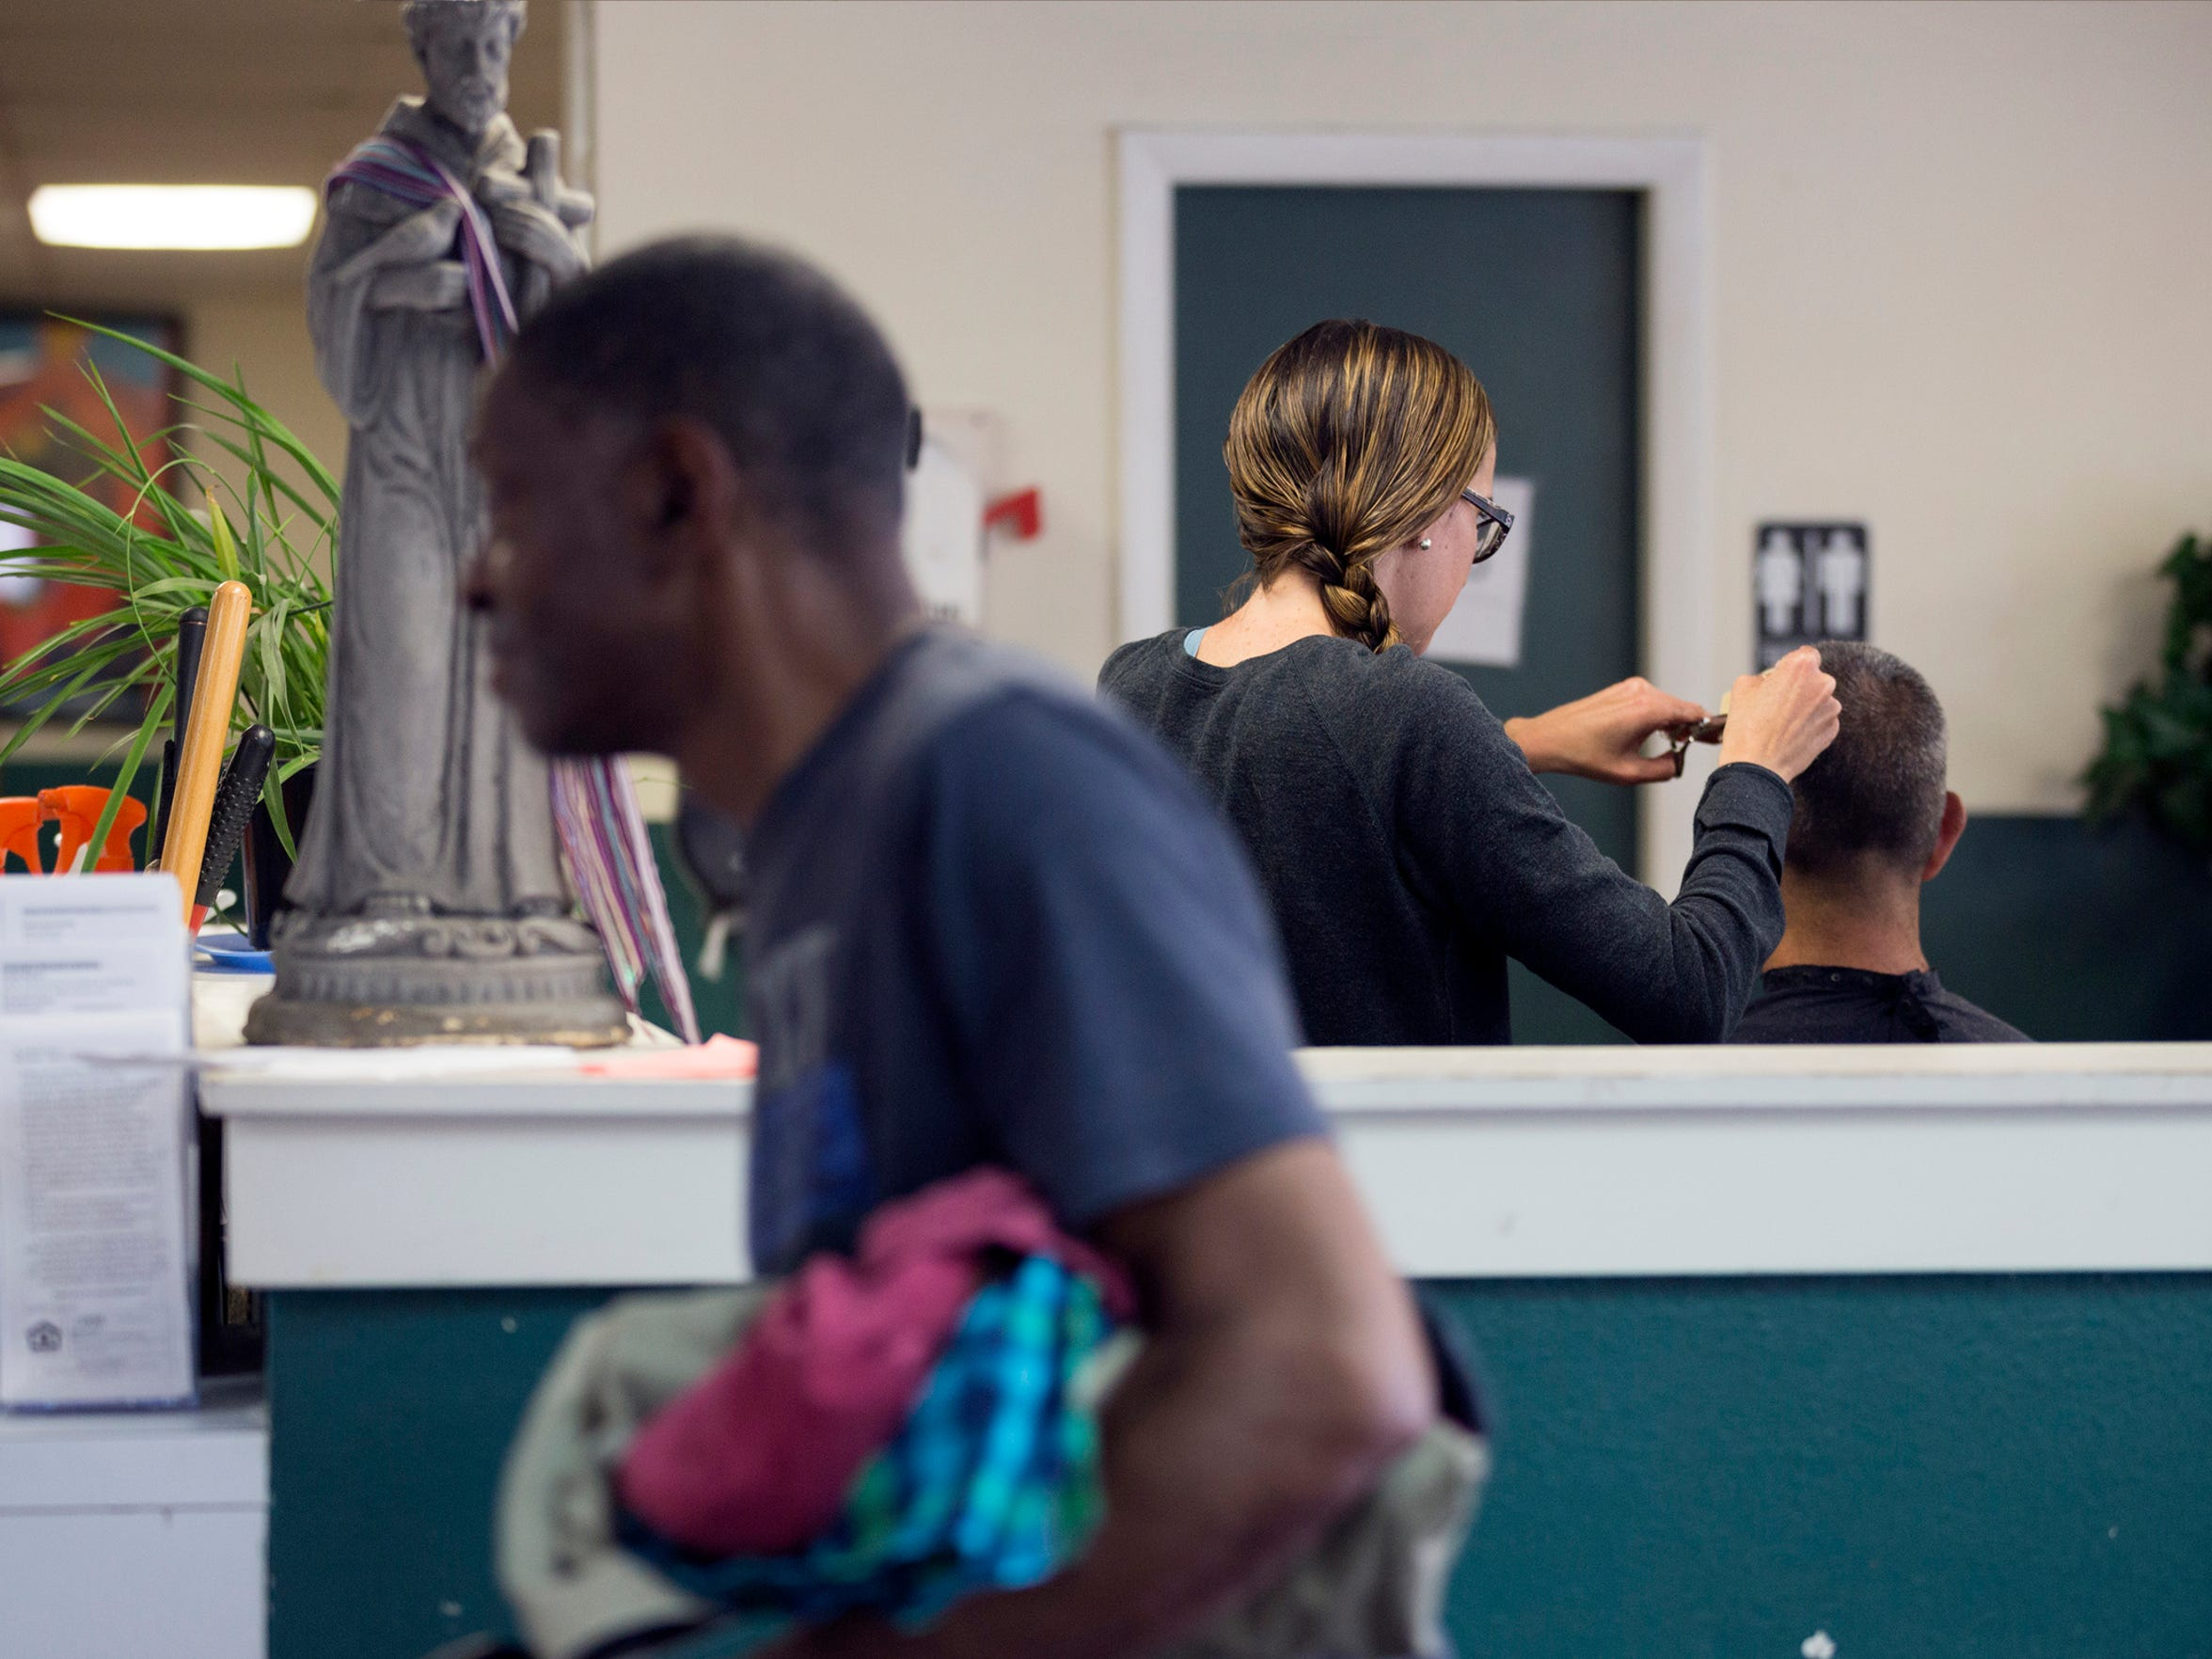 Homeless men gather at the St. Francis Center for meals, service referrals and haircuts in Denver, Colo., Monday, June 18, 2018. The shelter has served increased numbers of homeless people since the legalization